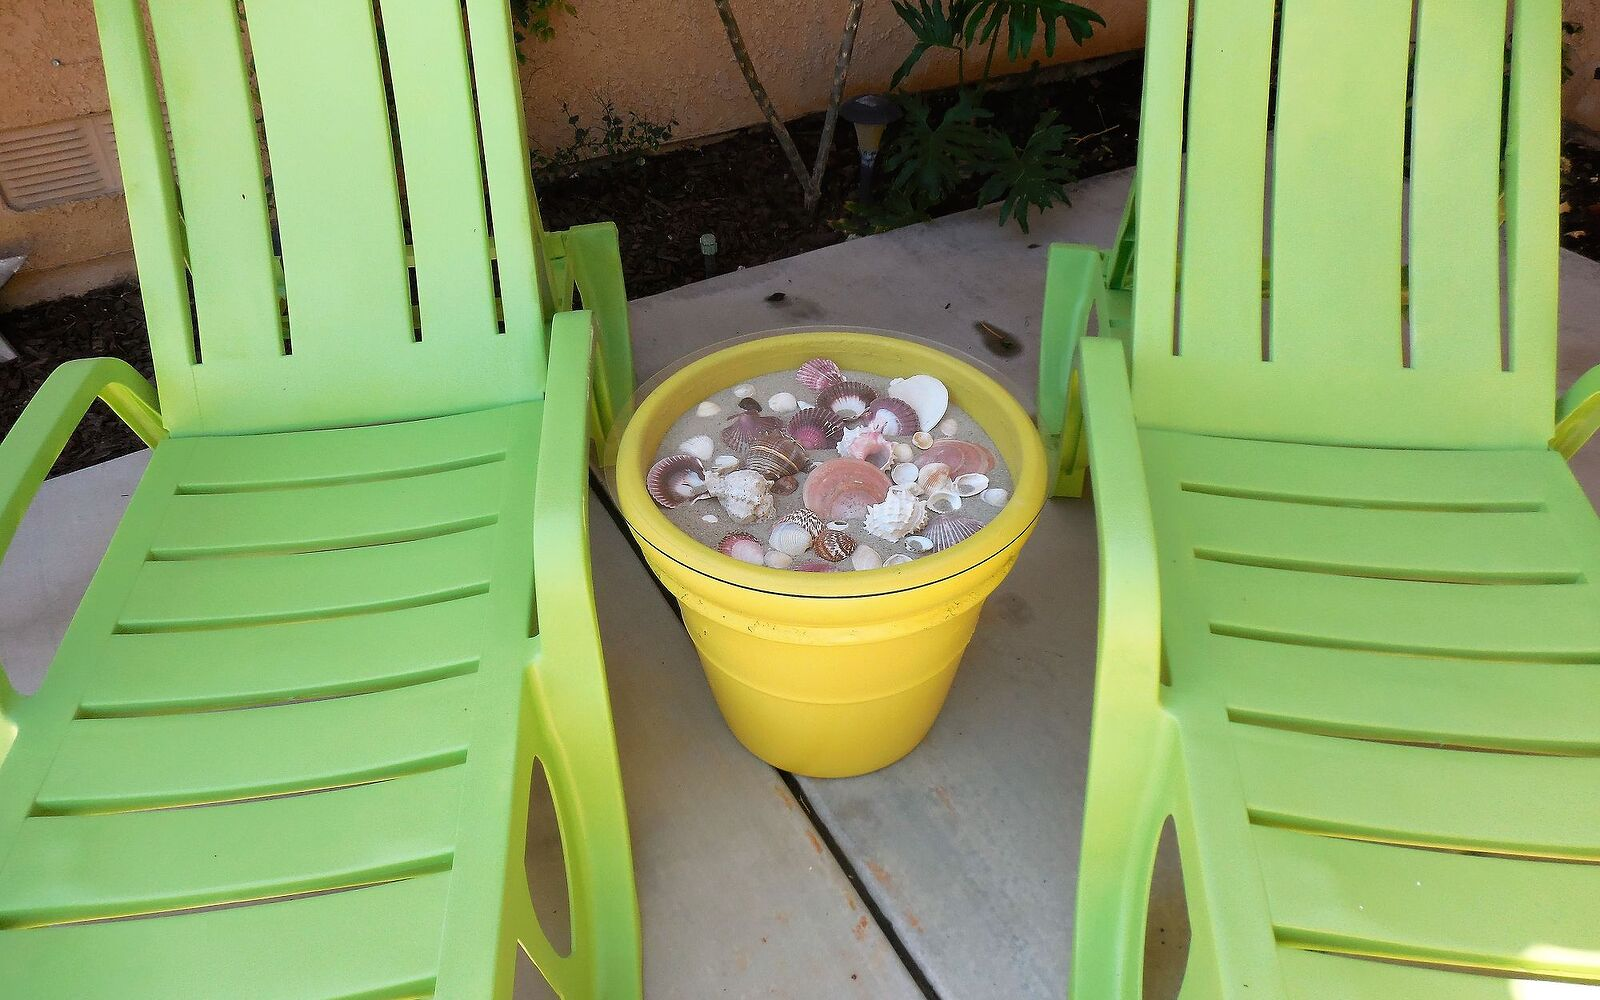 s 12 pool chair ideas we never would have thought of, Upgrade Plastic Chairs With Rustoleum Paint